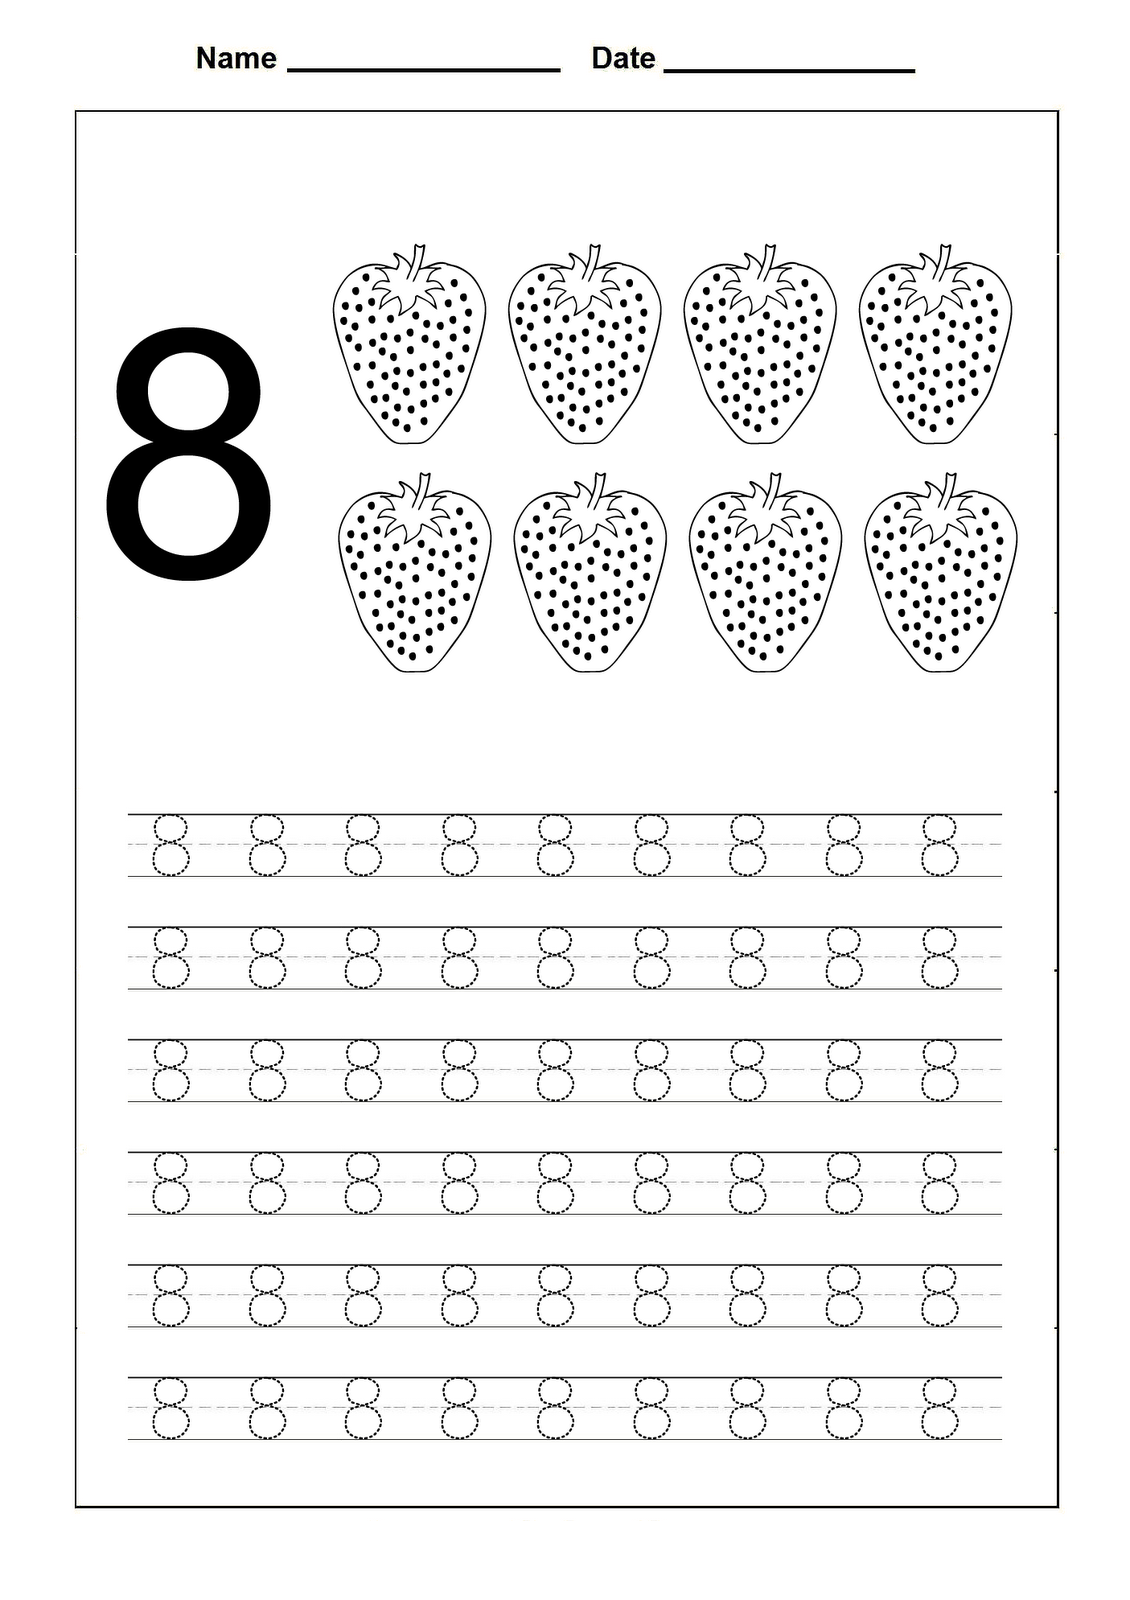 Cornicetta Fate likewise  likewise Free Printable Halloween Party Invitations Templates additionally Preschool Letter Worksheet H also Rrnbw. on preschool activity sheets